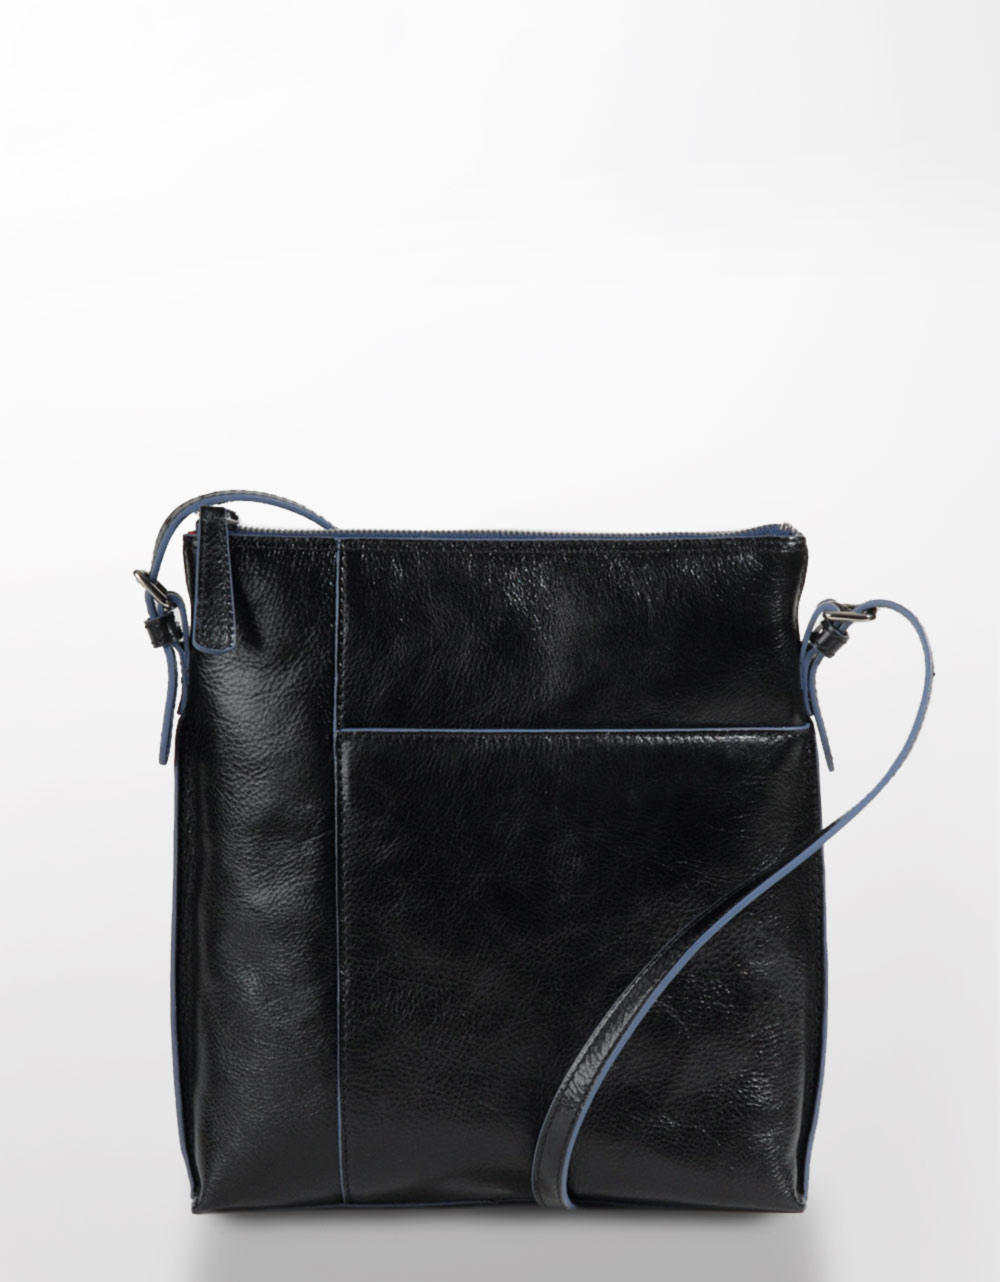 Hobo International Alessa Leather Cross-Body Bag in Black ...